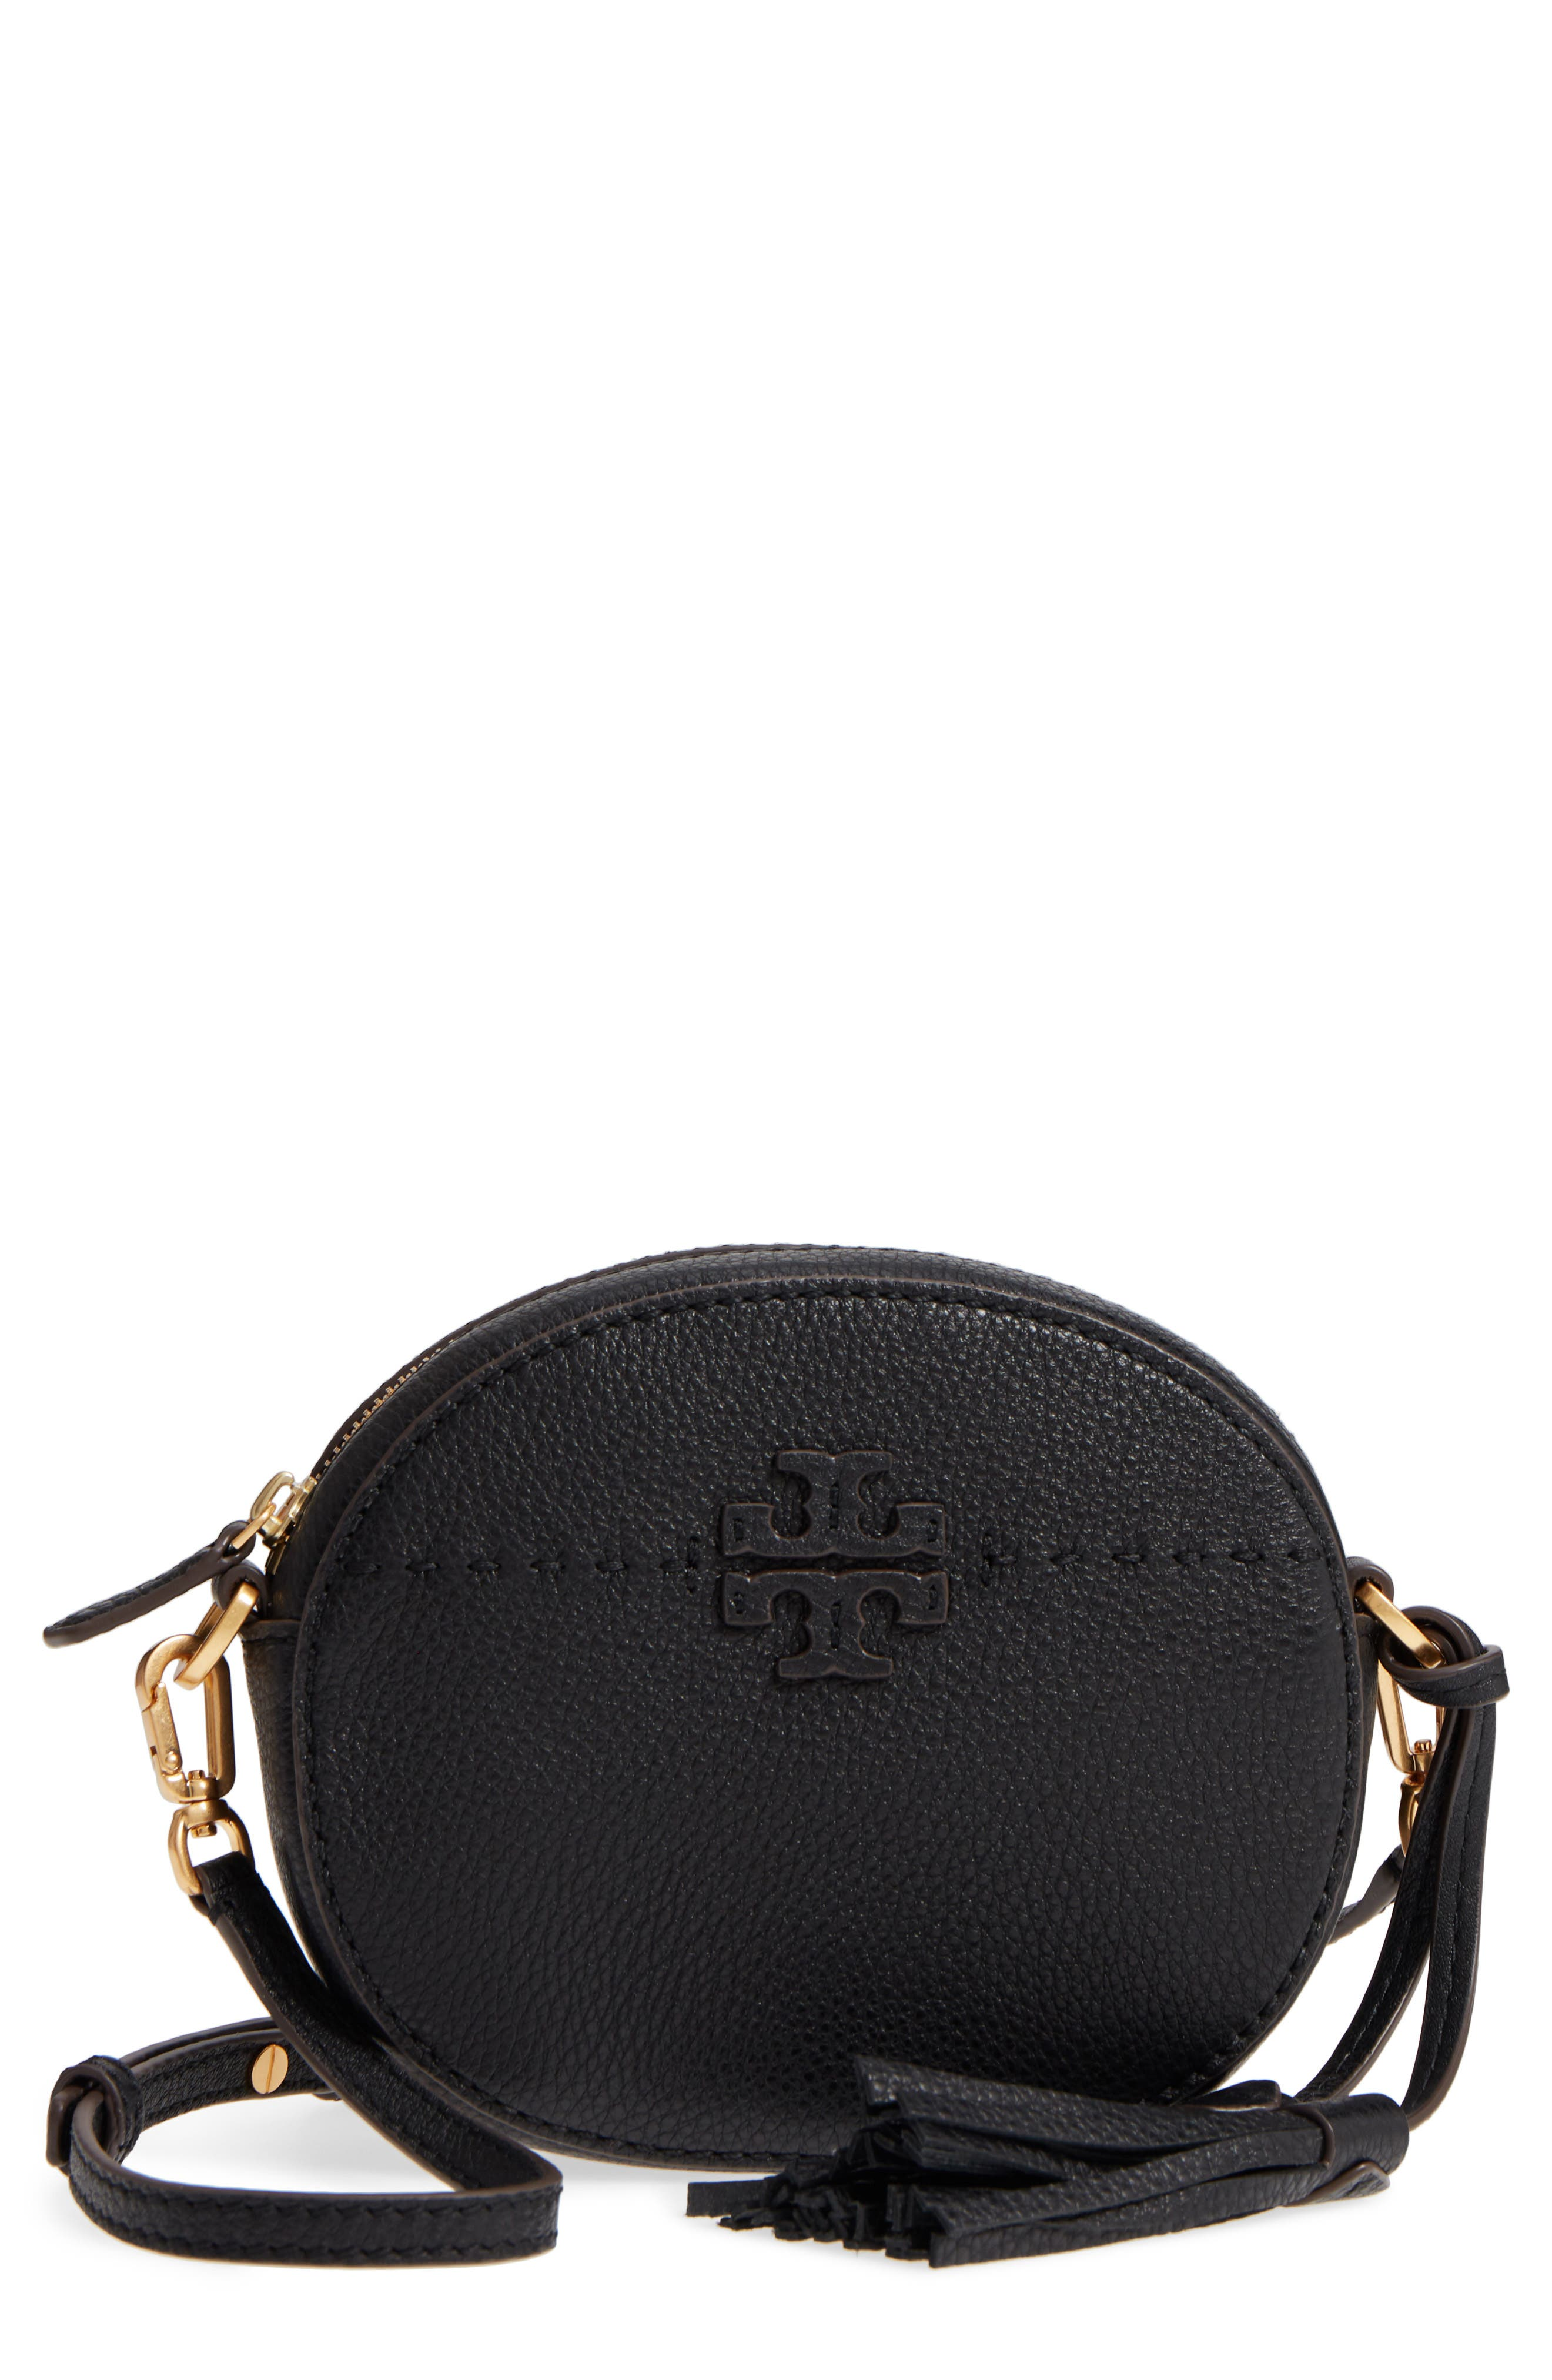 McGraw Leather Crossbody Bag,                         Main,                         color, Black